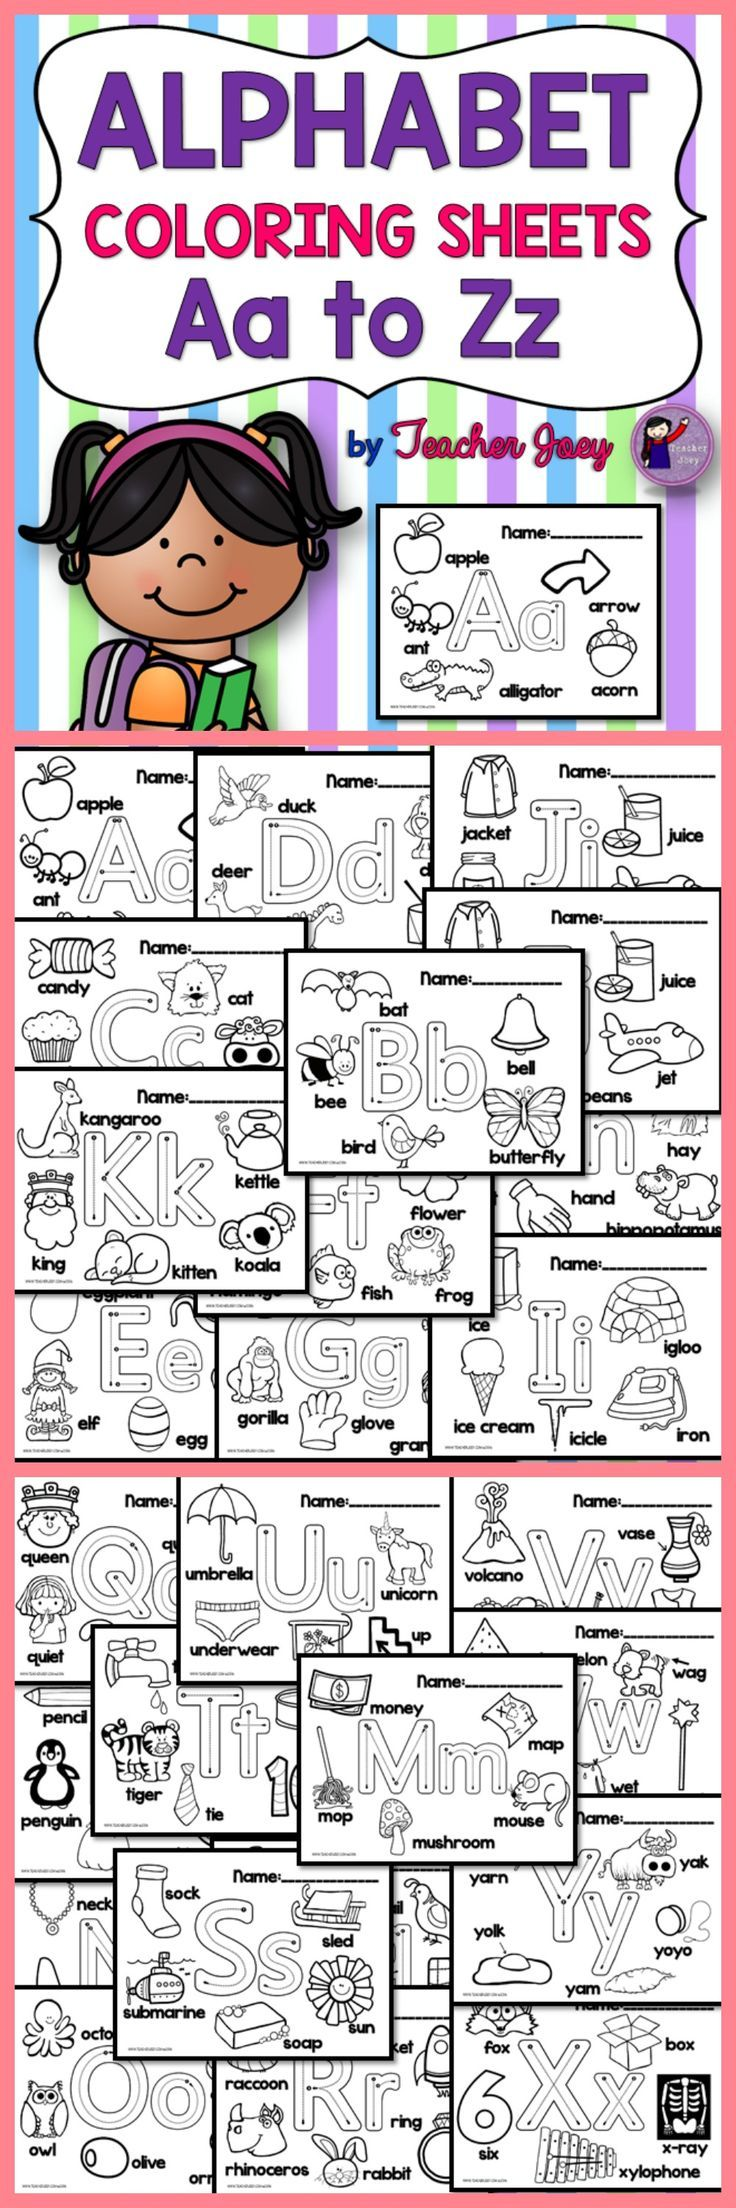 Alphabet Coloring Sheets Alphabet Letter Aa To Zz  This alphabet coloring sheets set is for Aa to Zz. It includes 29 pages with images and words beginning with the alphabet Aa - Zz.